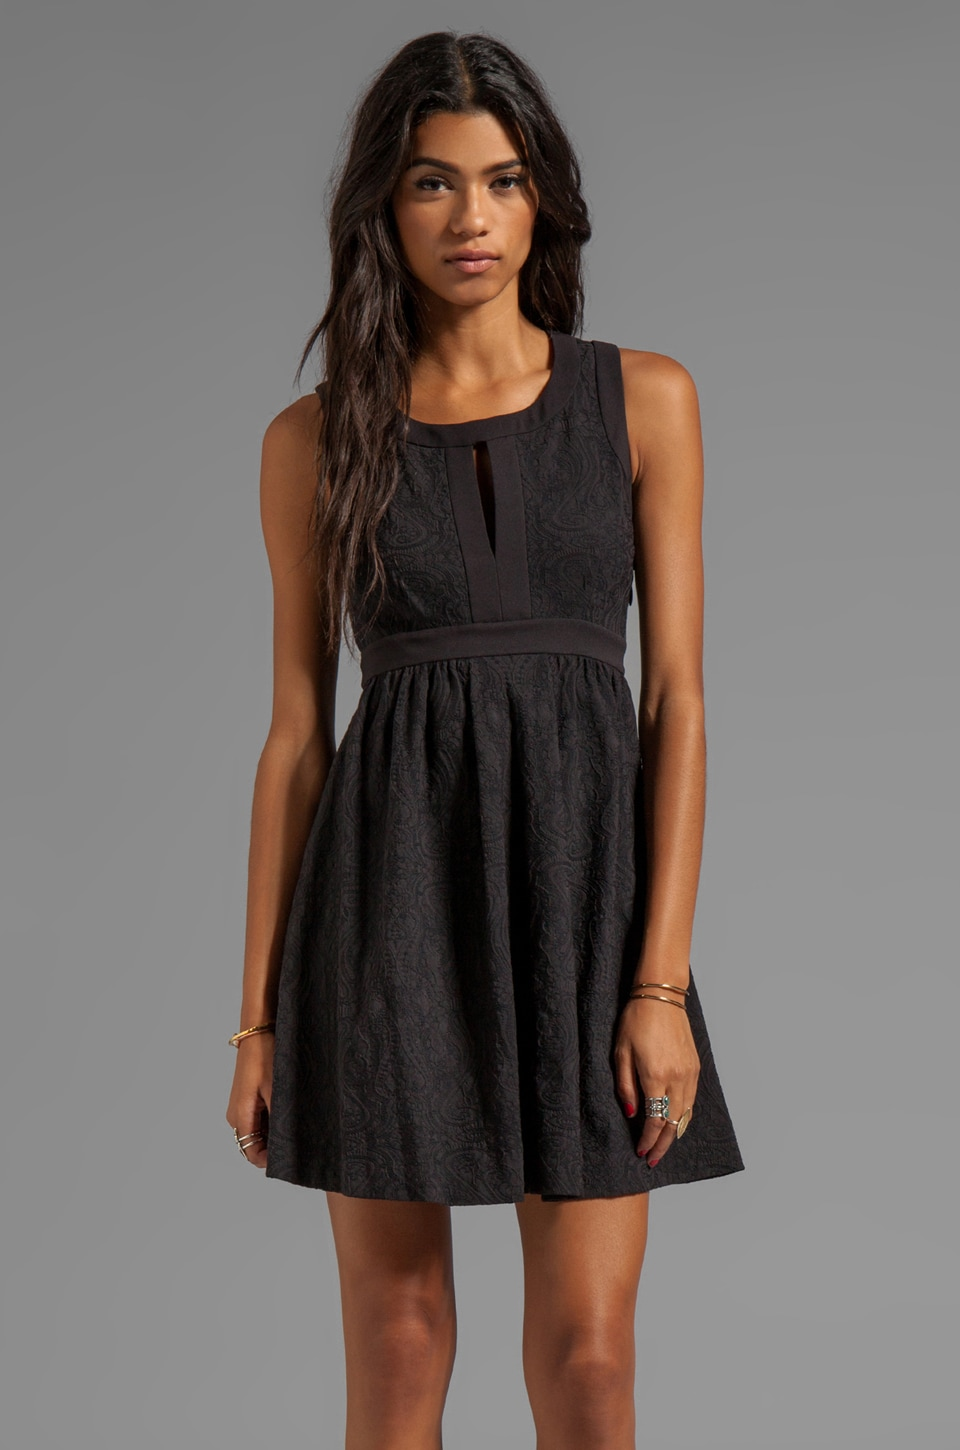 Juicy Couture Cloque Jacquard Dress in Pitch Black